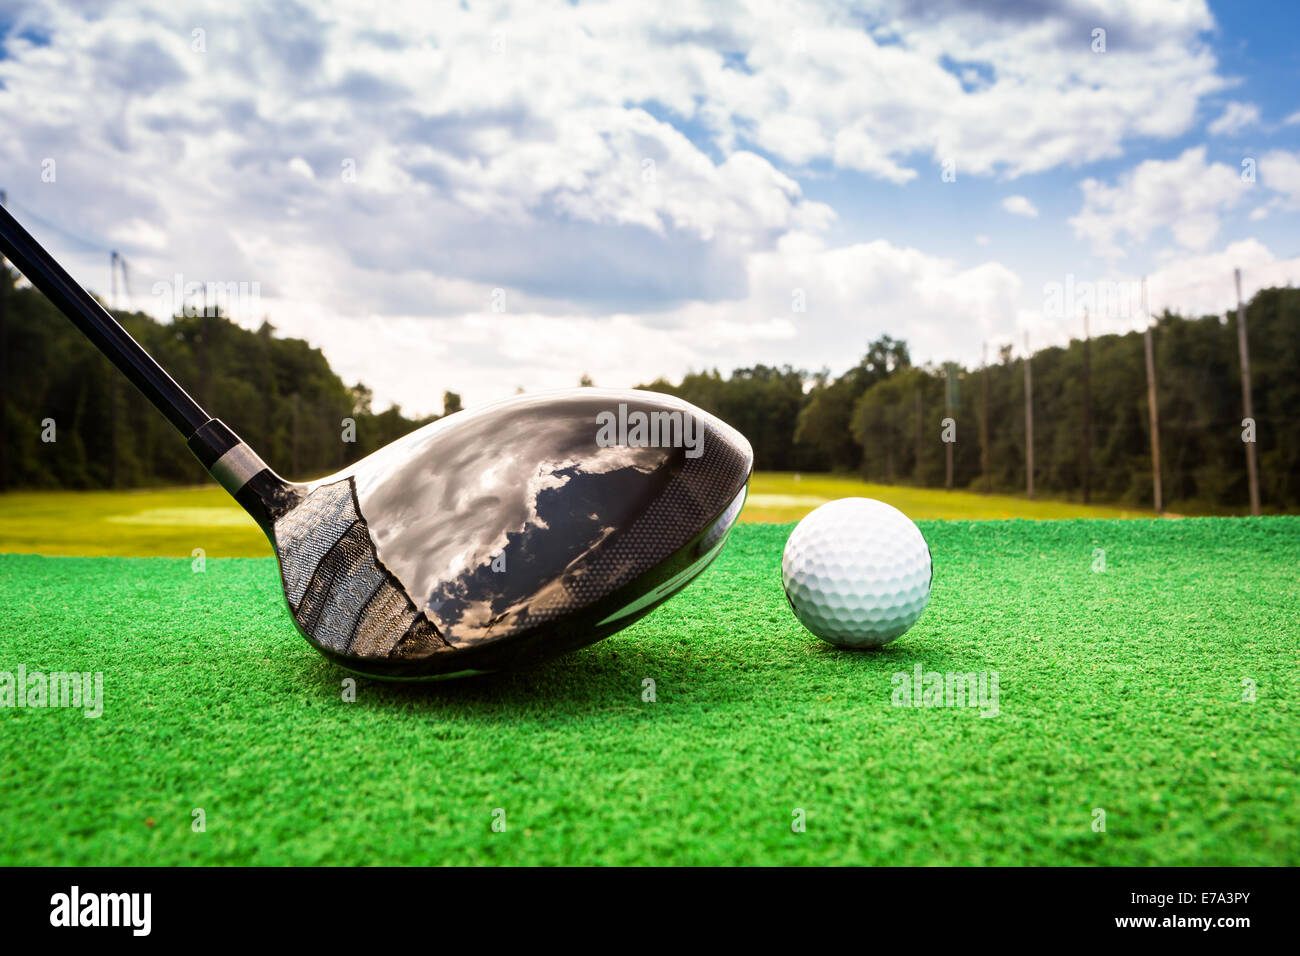 Close-up of a golf ball and a golf wood on a driving range - Stock Image